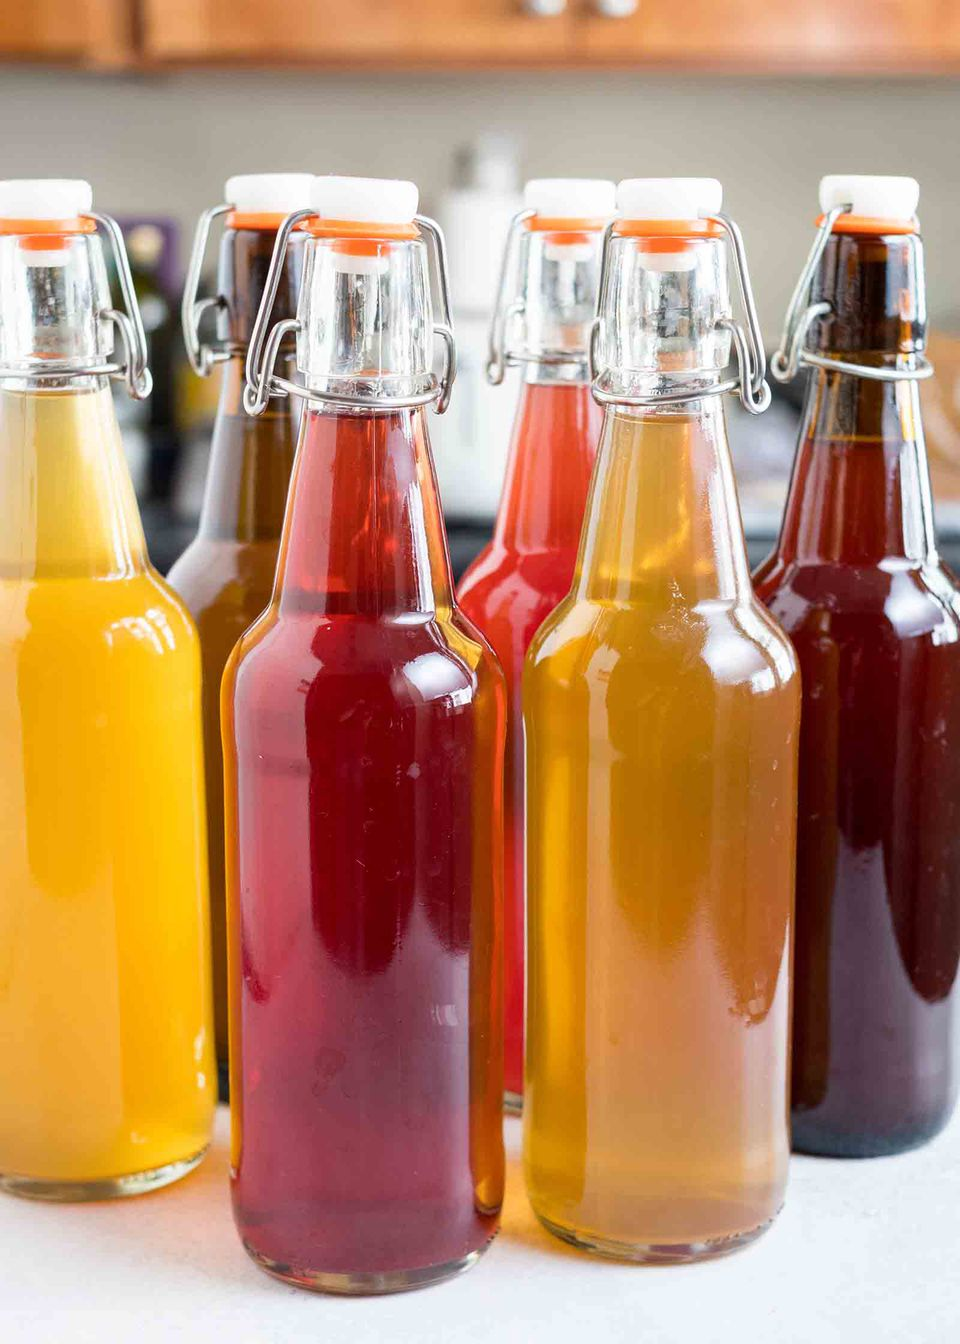 Several filled bottles of homemade kombucha on a counter